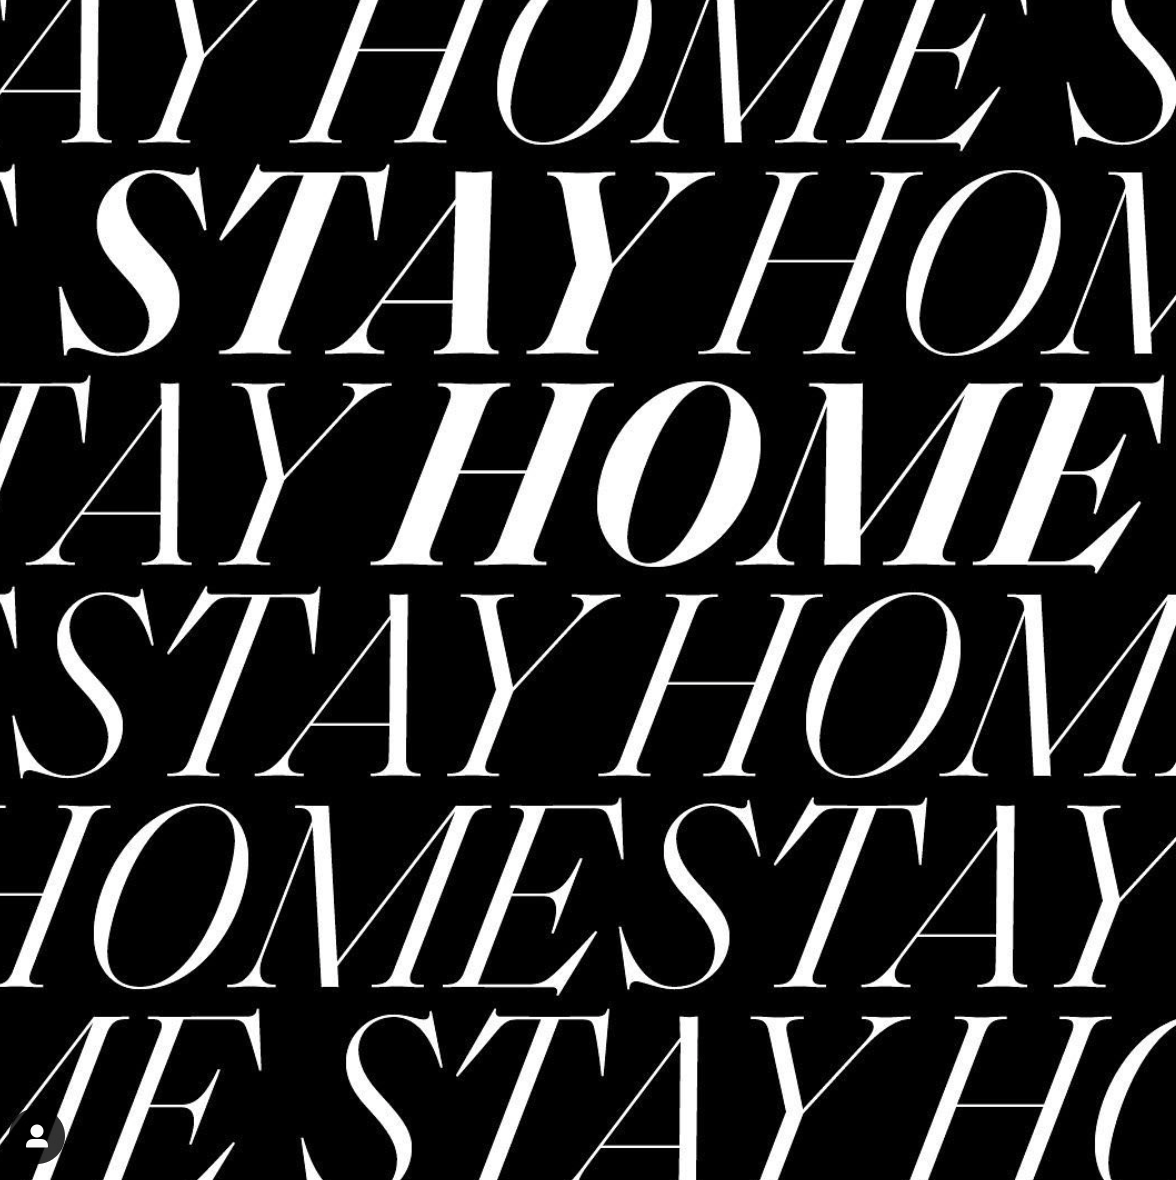 Glamour Is Taking the Pledge to Stay Home. We Hope You'll Join Us